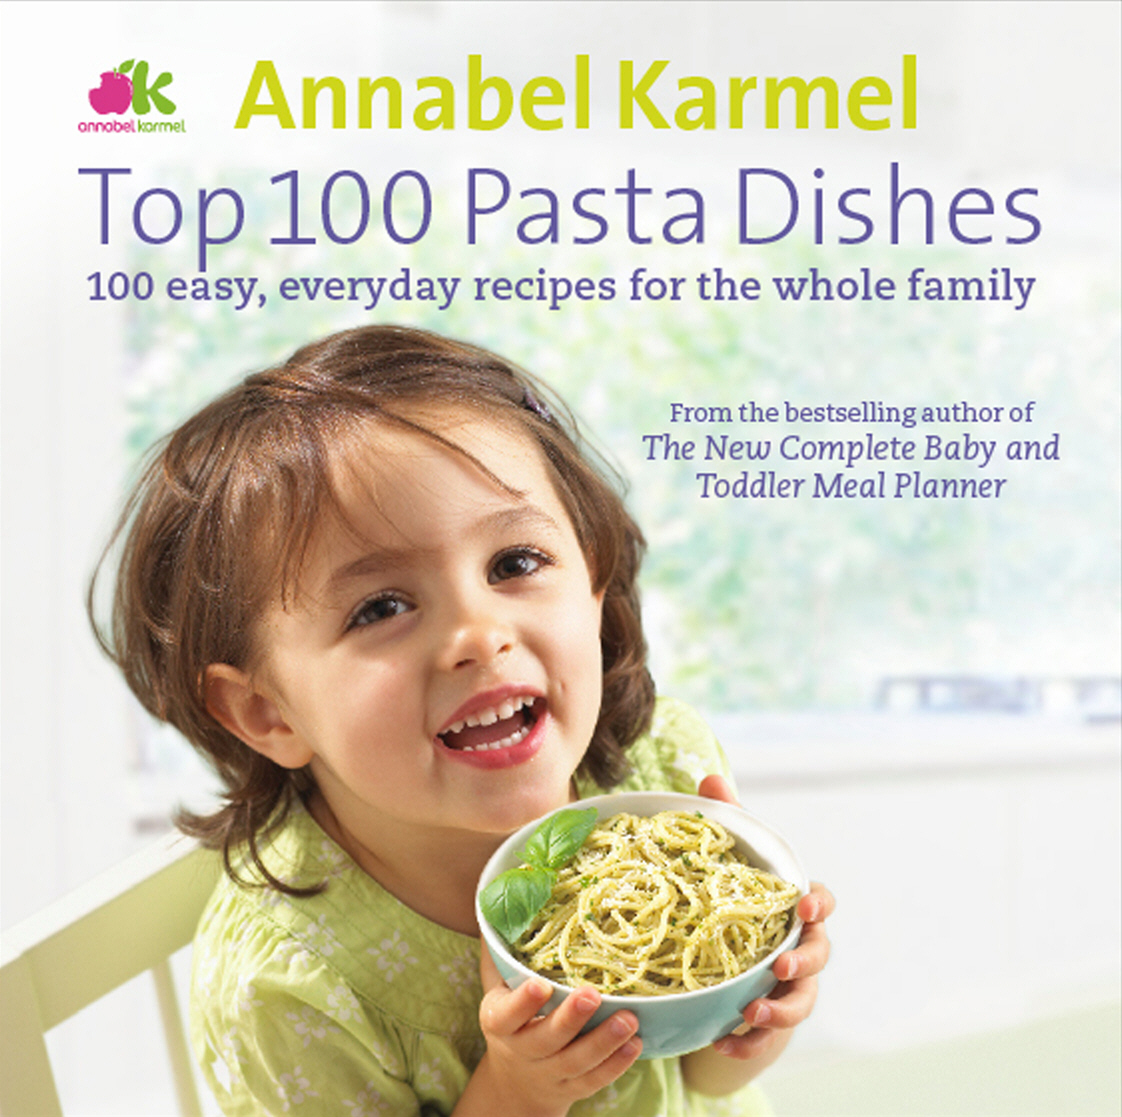 Top 100 Pasta Dishes the good food book for families